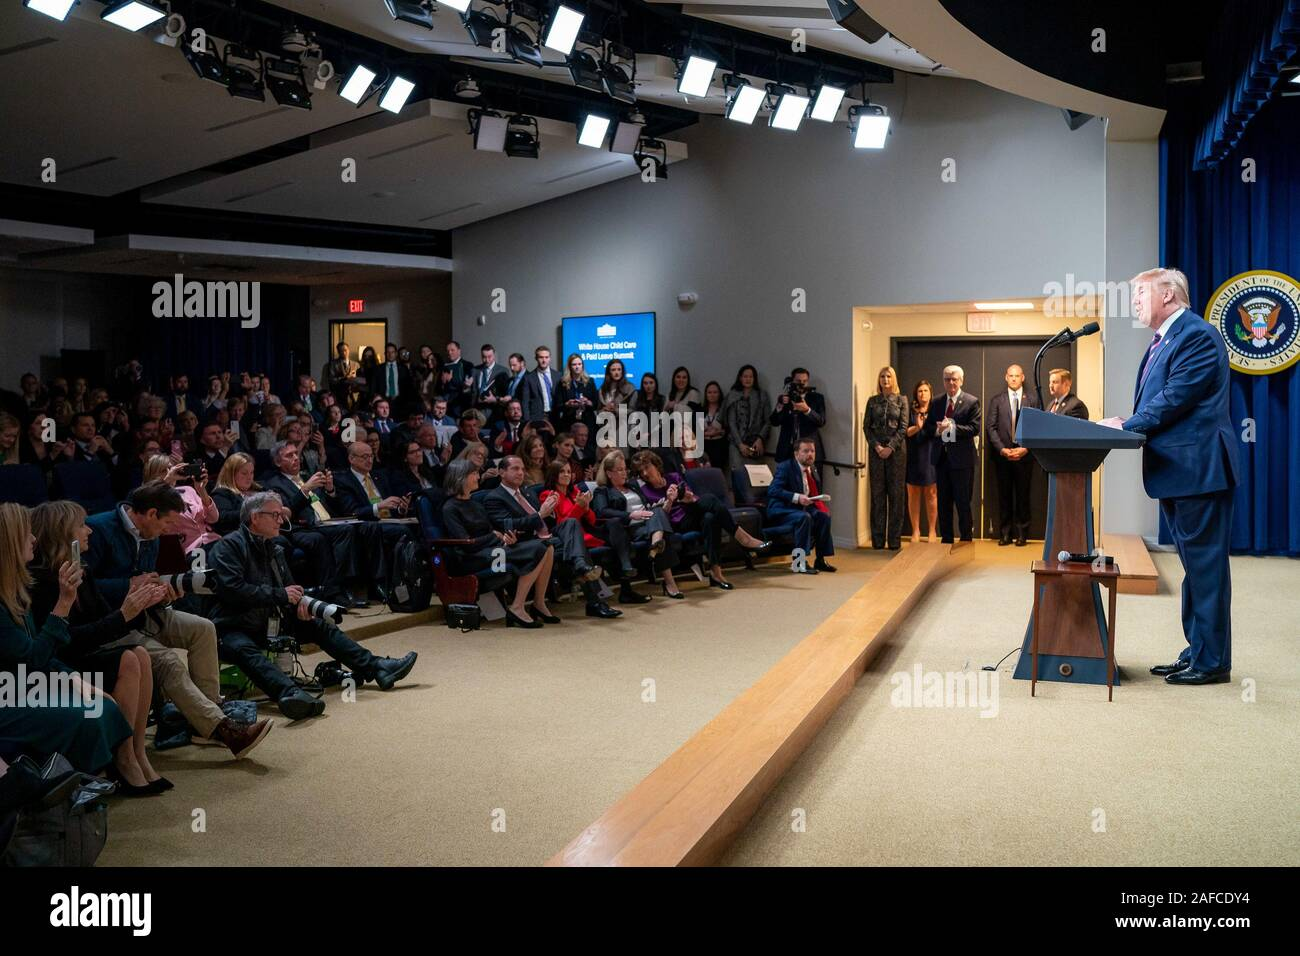 Washington, United States Of America. 12th Dec, 2019. President Donald J. Trump delivers remarks at the White House Summit on Child Care and Paid Leave: Supporting AmericaÕs Working Families Thursday, Dec. 12, 2019, in the South Court Auditorium of the Eisenhower Executive Office Building of the White House. People: President Donald J. Trump Credit: Storms Media Group/Alamy Live News Stock Photo